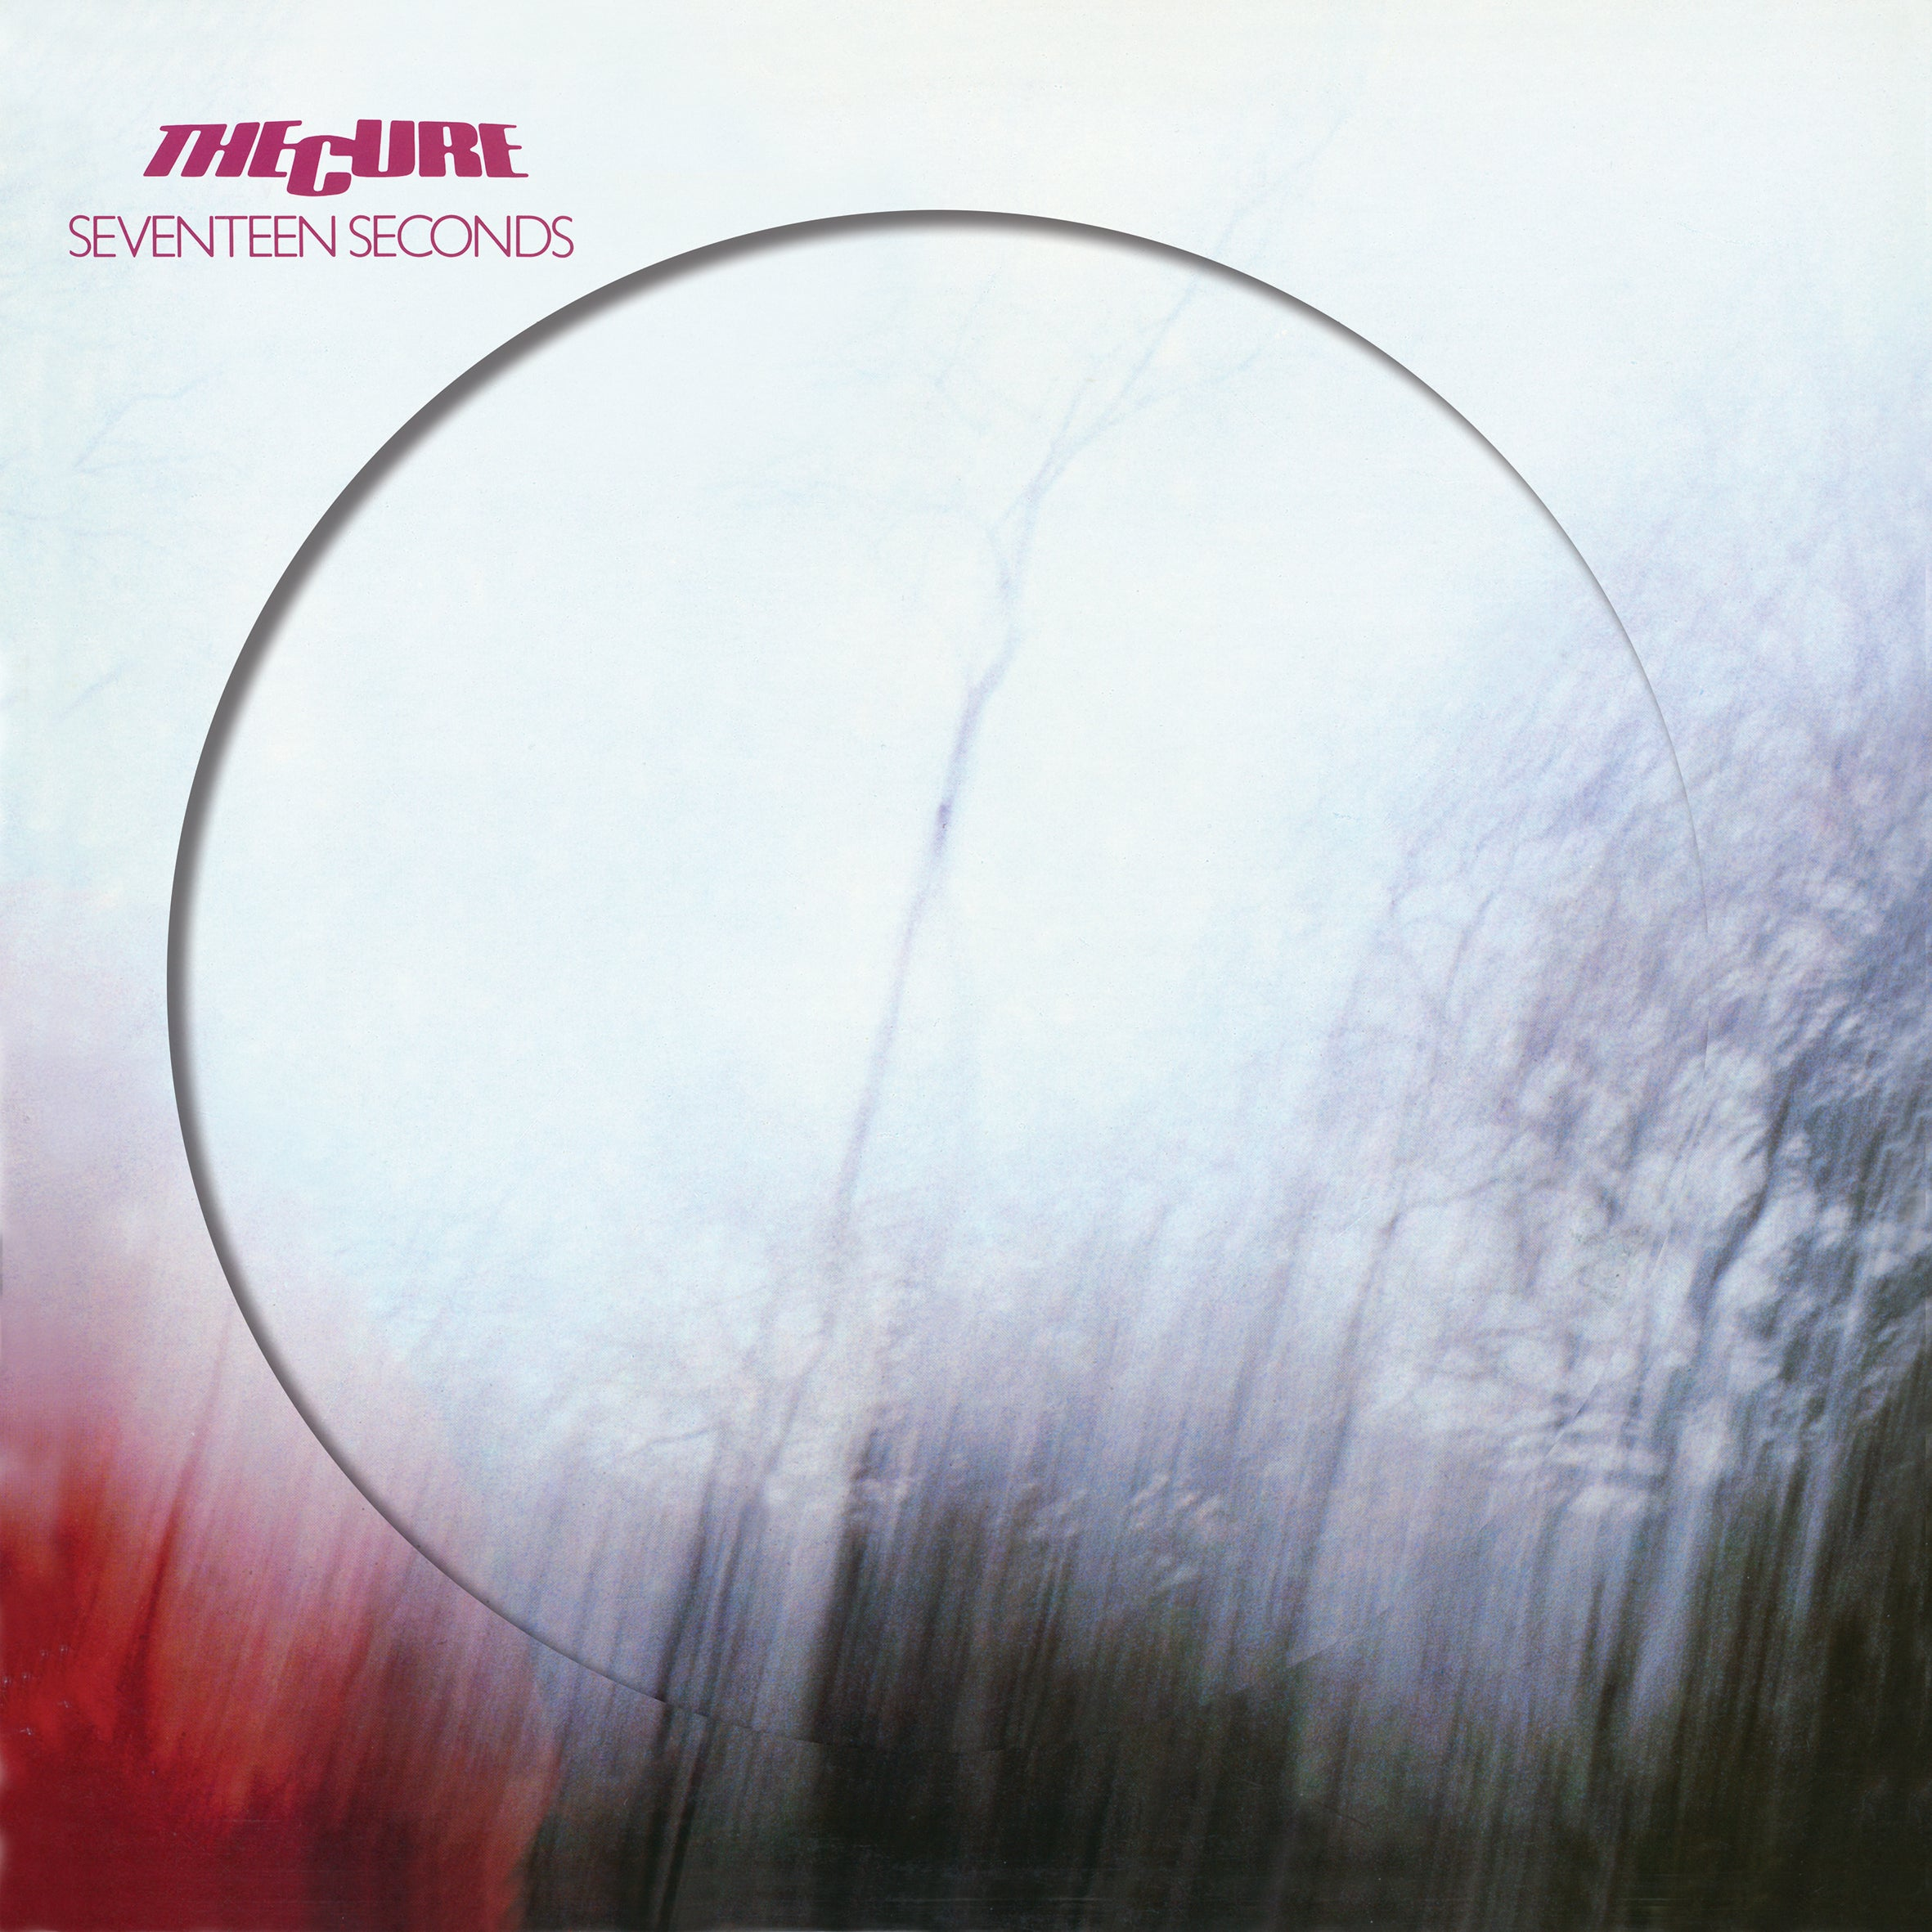 The Cure - Seventeen Seconds (RSD 2020 Drop One) Picture Disc Vinyl Record Album